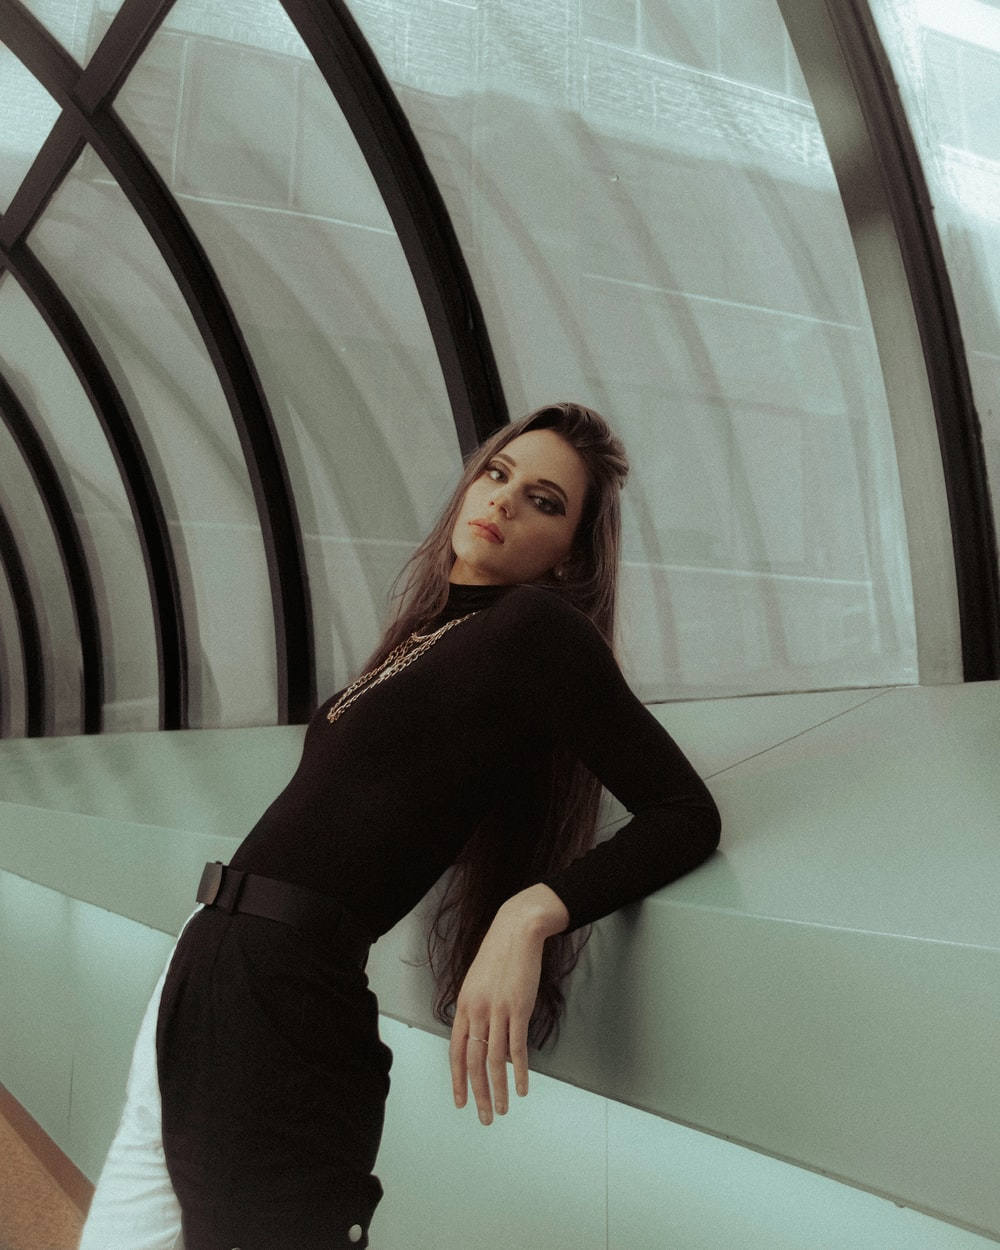 woman in black long sleeve shirt and black pants standing beside glass wall